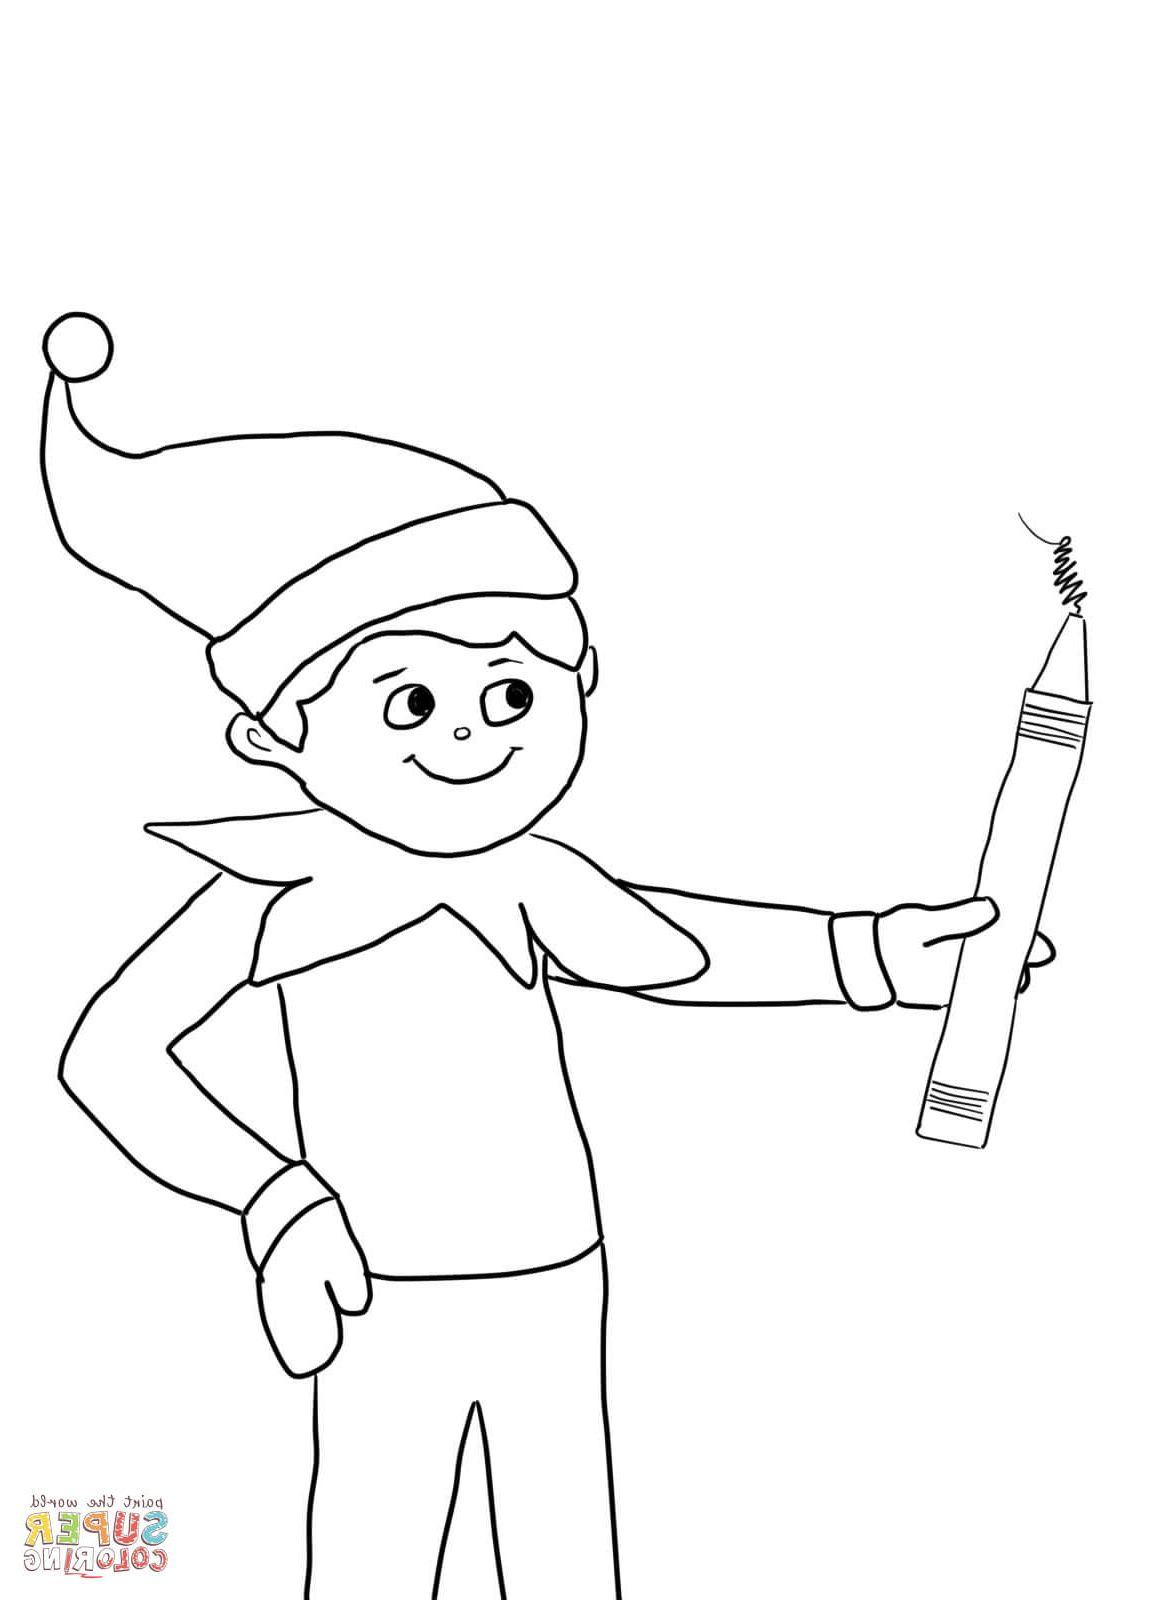 24 Unique Collection Of Elf On The Shelf Coloring Sheet